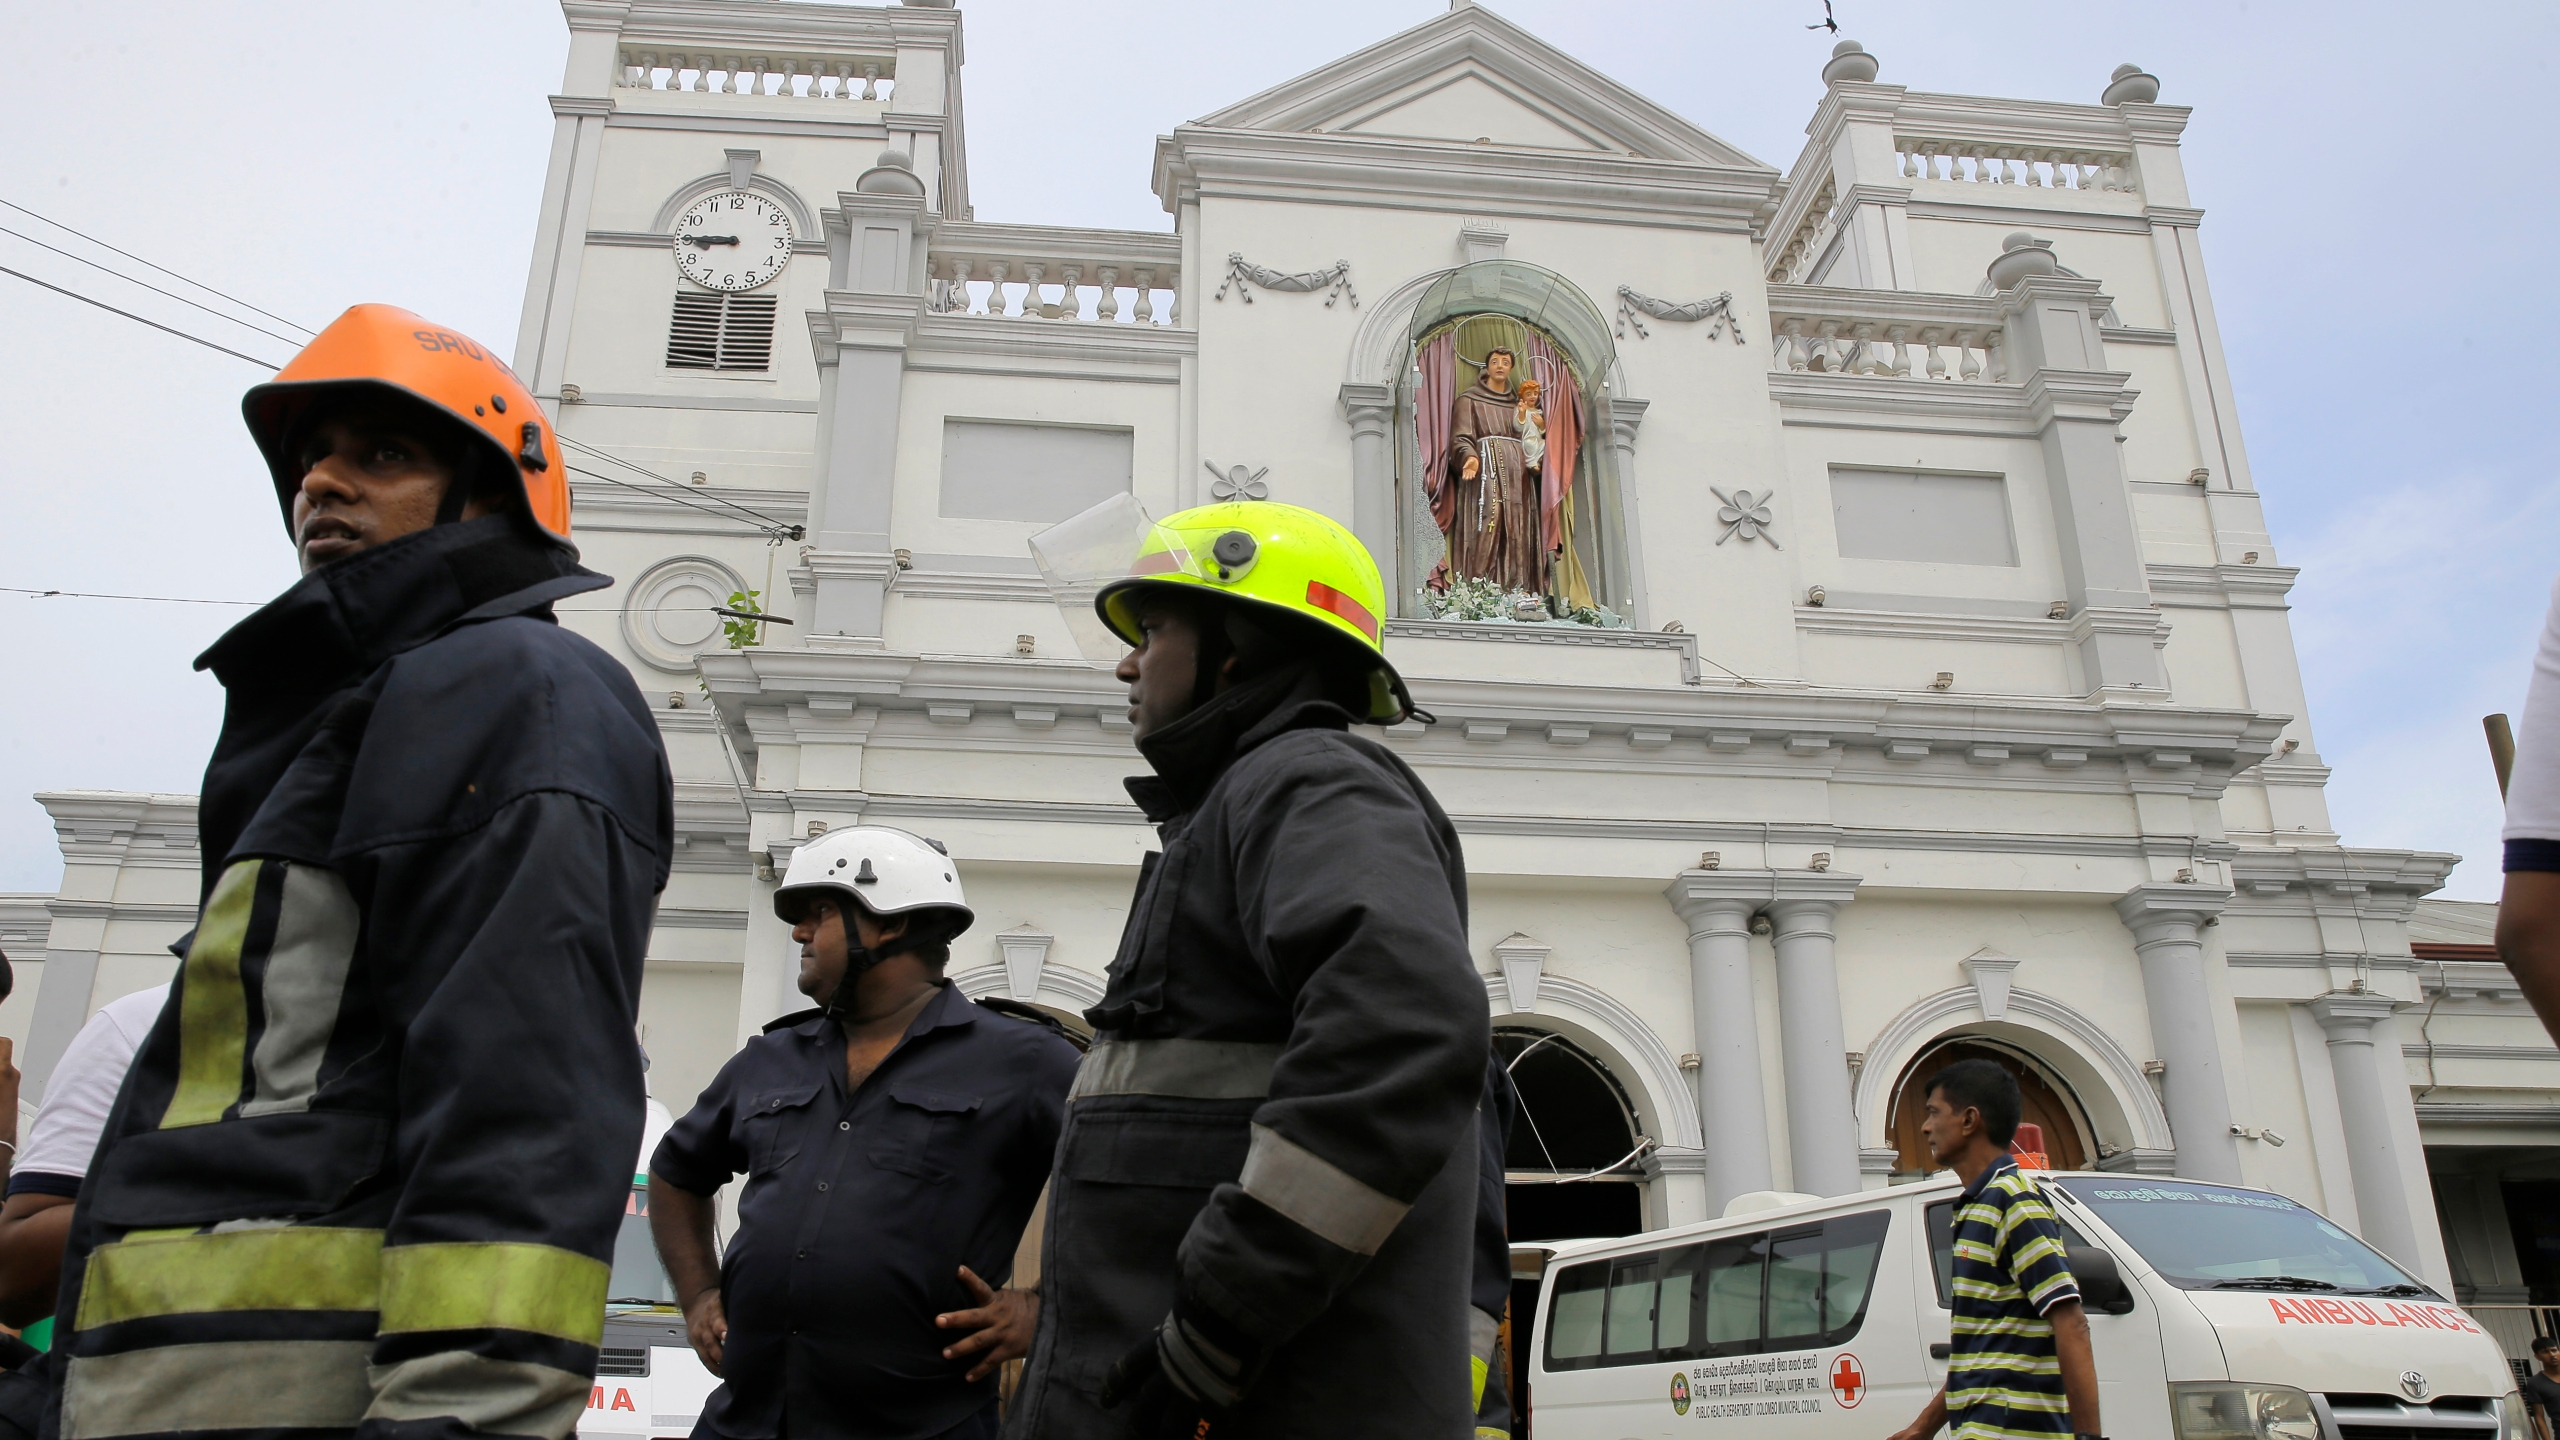 Sri_Lanka_Church_Blasts_73549-159532.jpg85308712